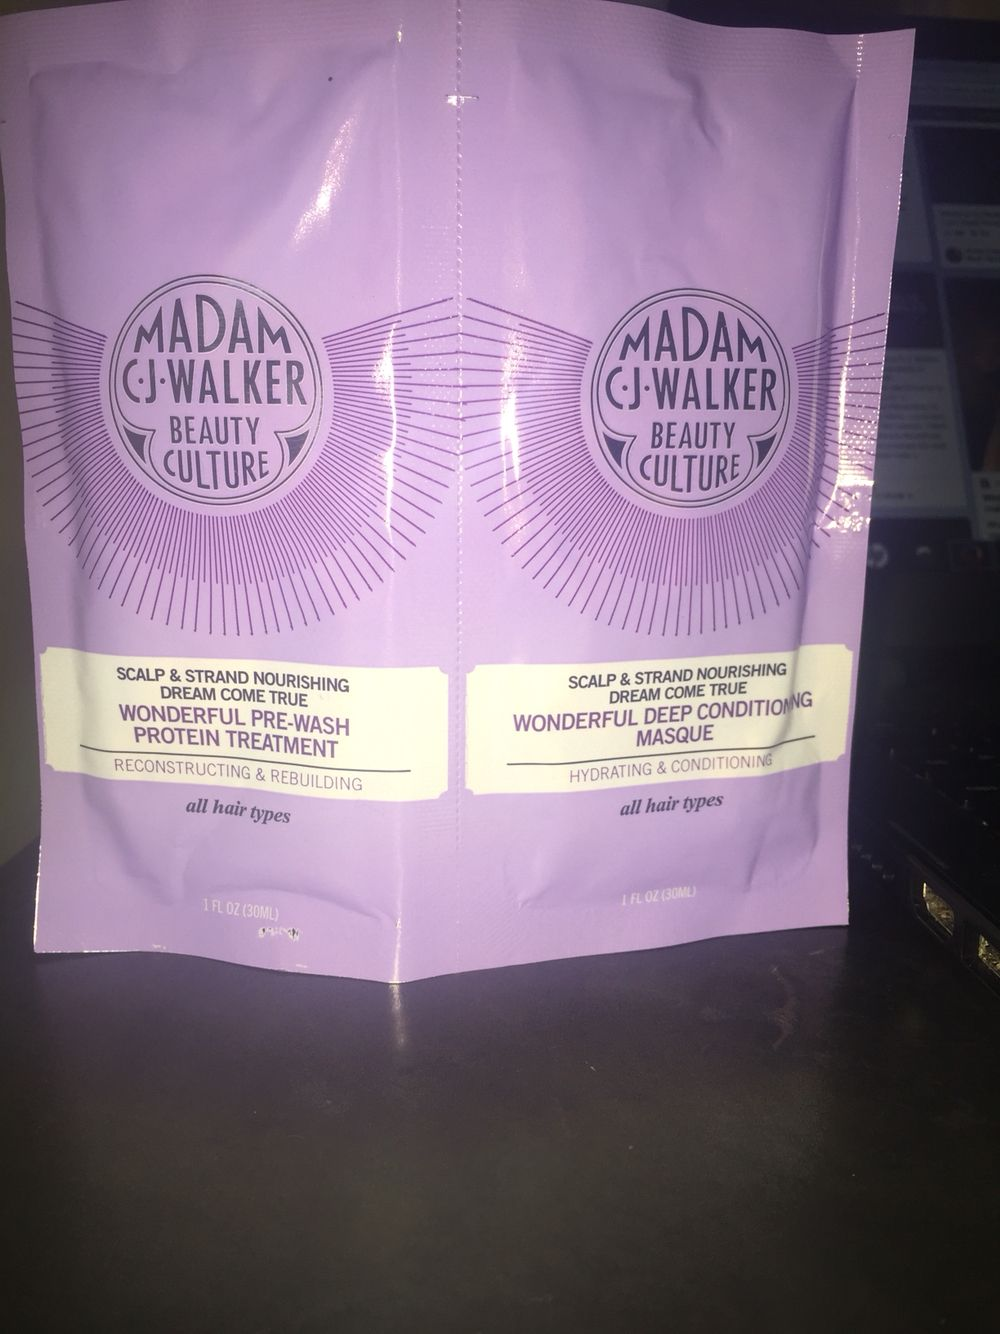 Madam C.J. Walker Beauty Culture Dream Come True Wonderful Pre- wash Protein Treatment and Deep conditioning masque all provided by @Influencer for testing purposes.  #BonitaVoxBox #MCJWBeautyCulture